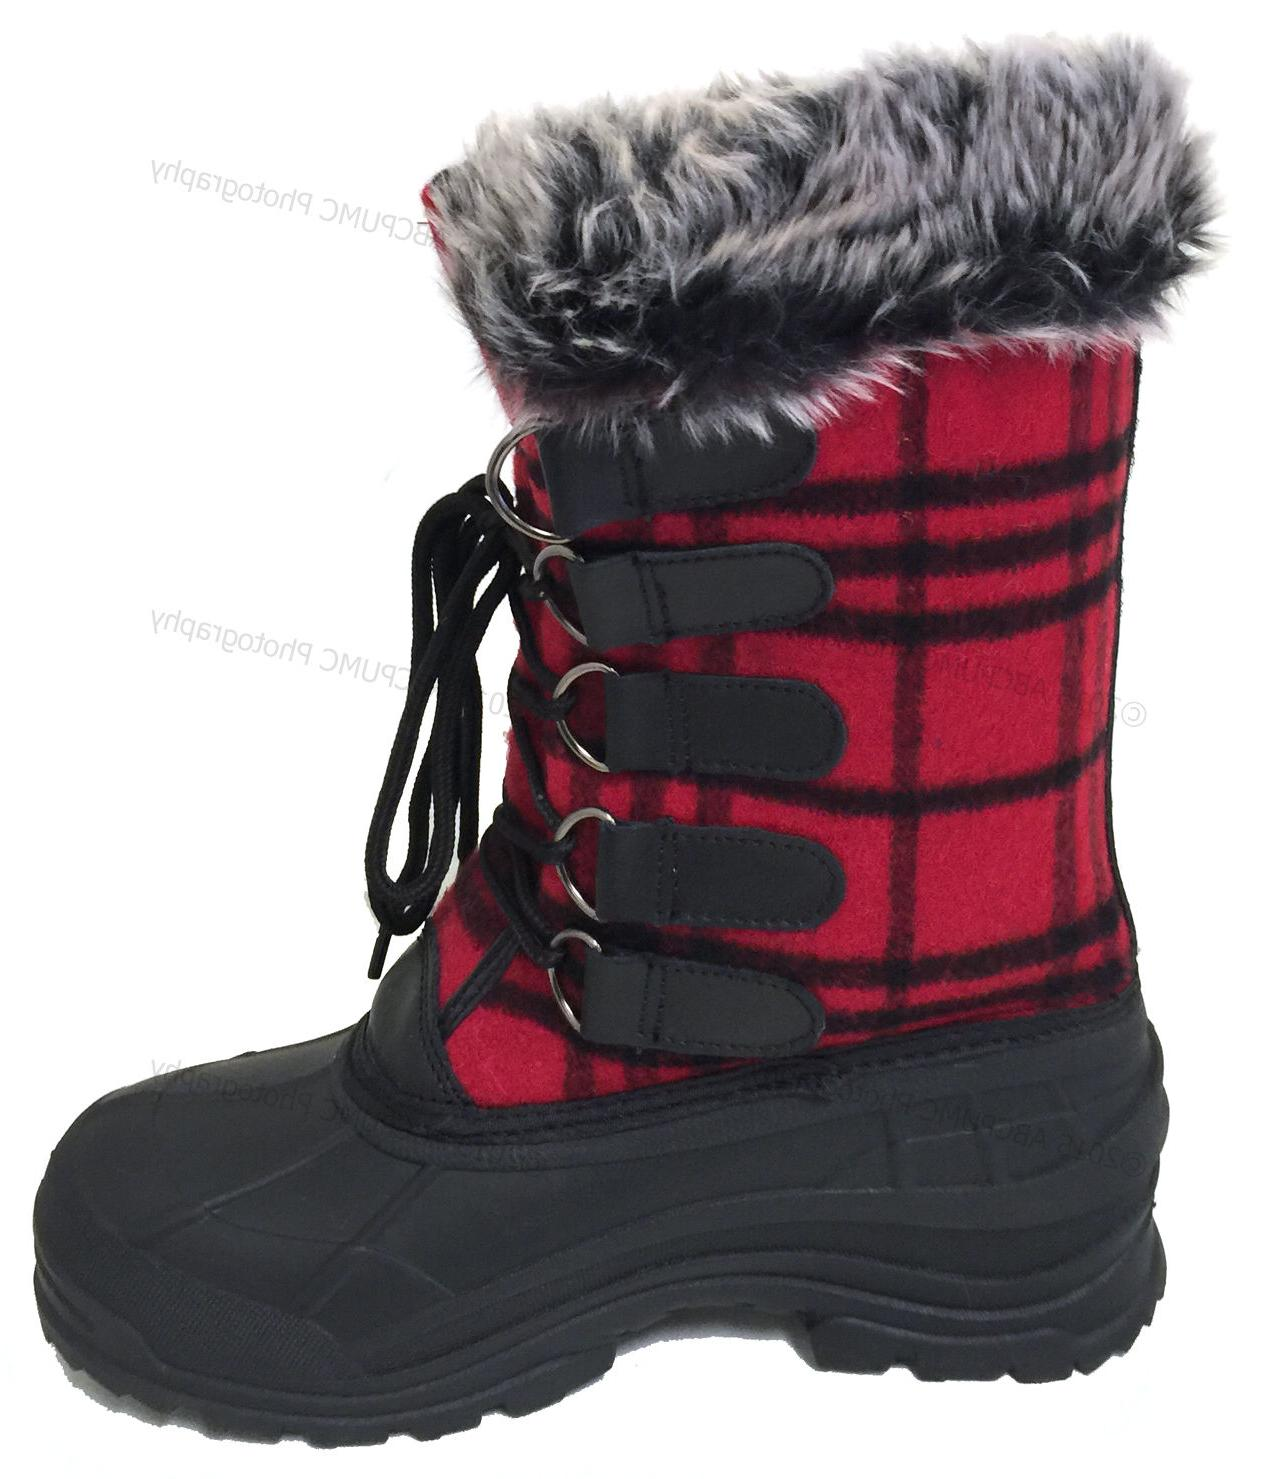 Womens Winter Boots Plaid Insulated Waterproof Shoe